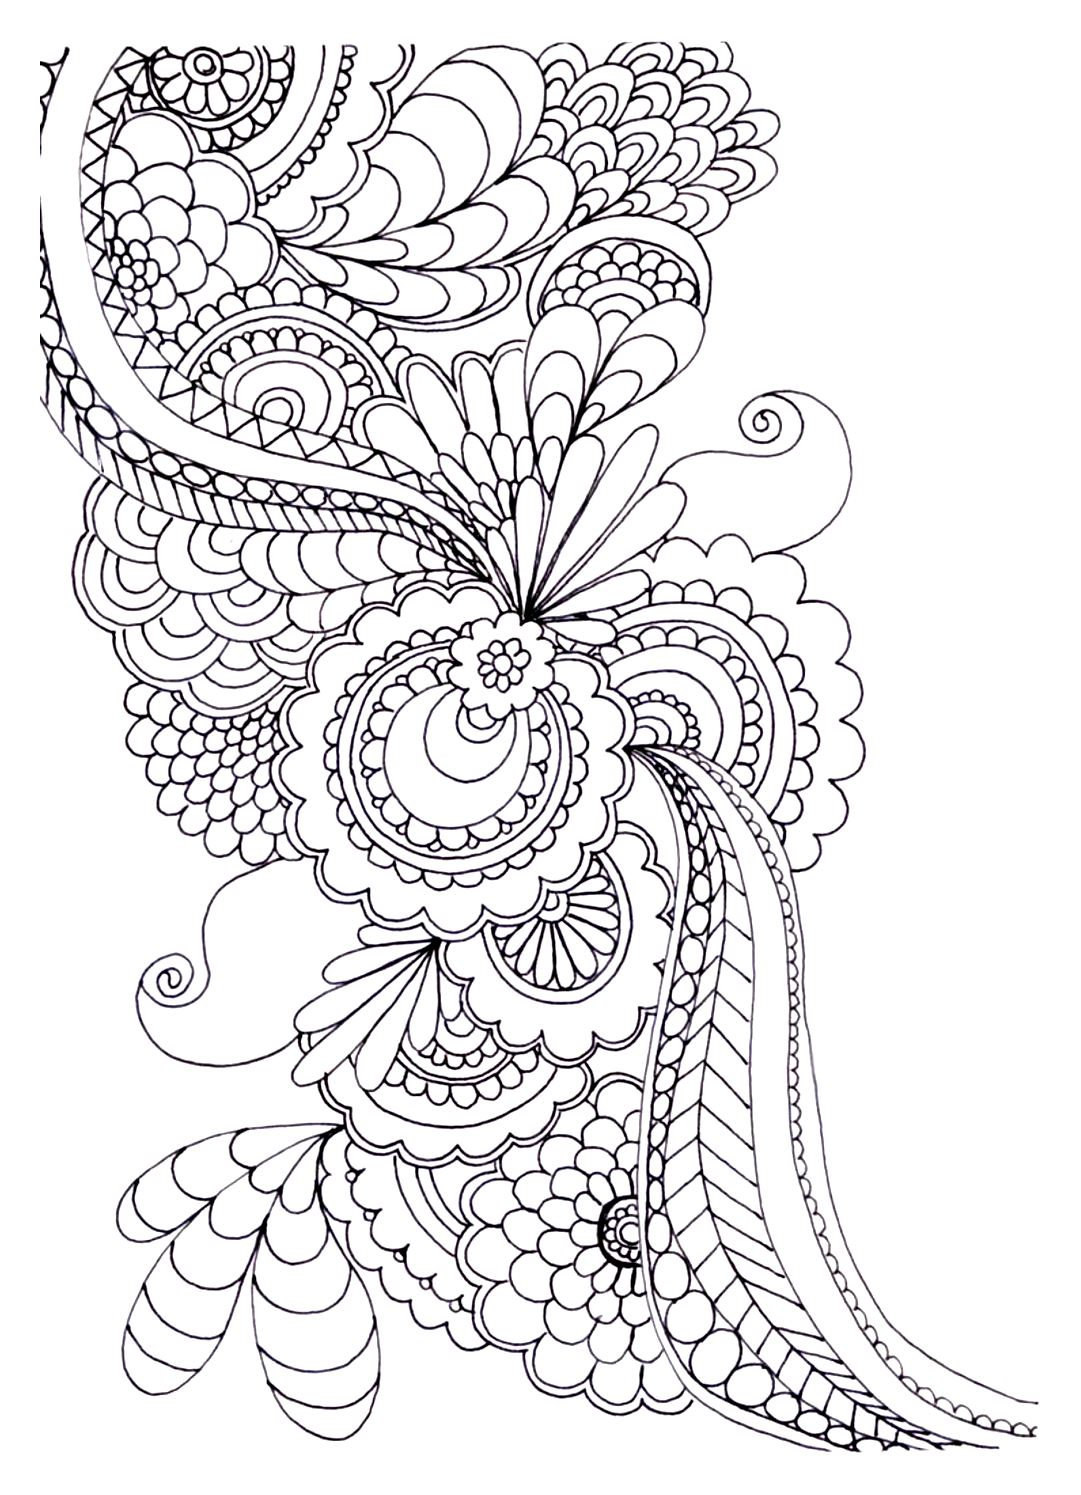 printable adults coloring pages free - photo#3